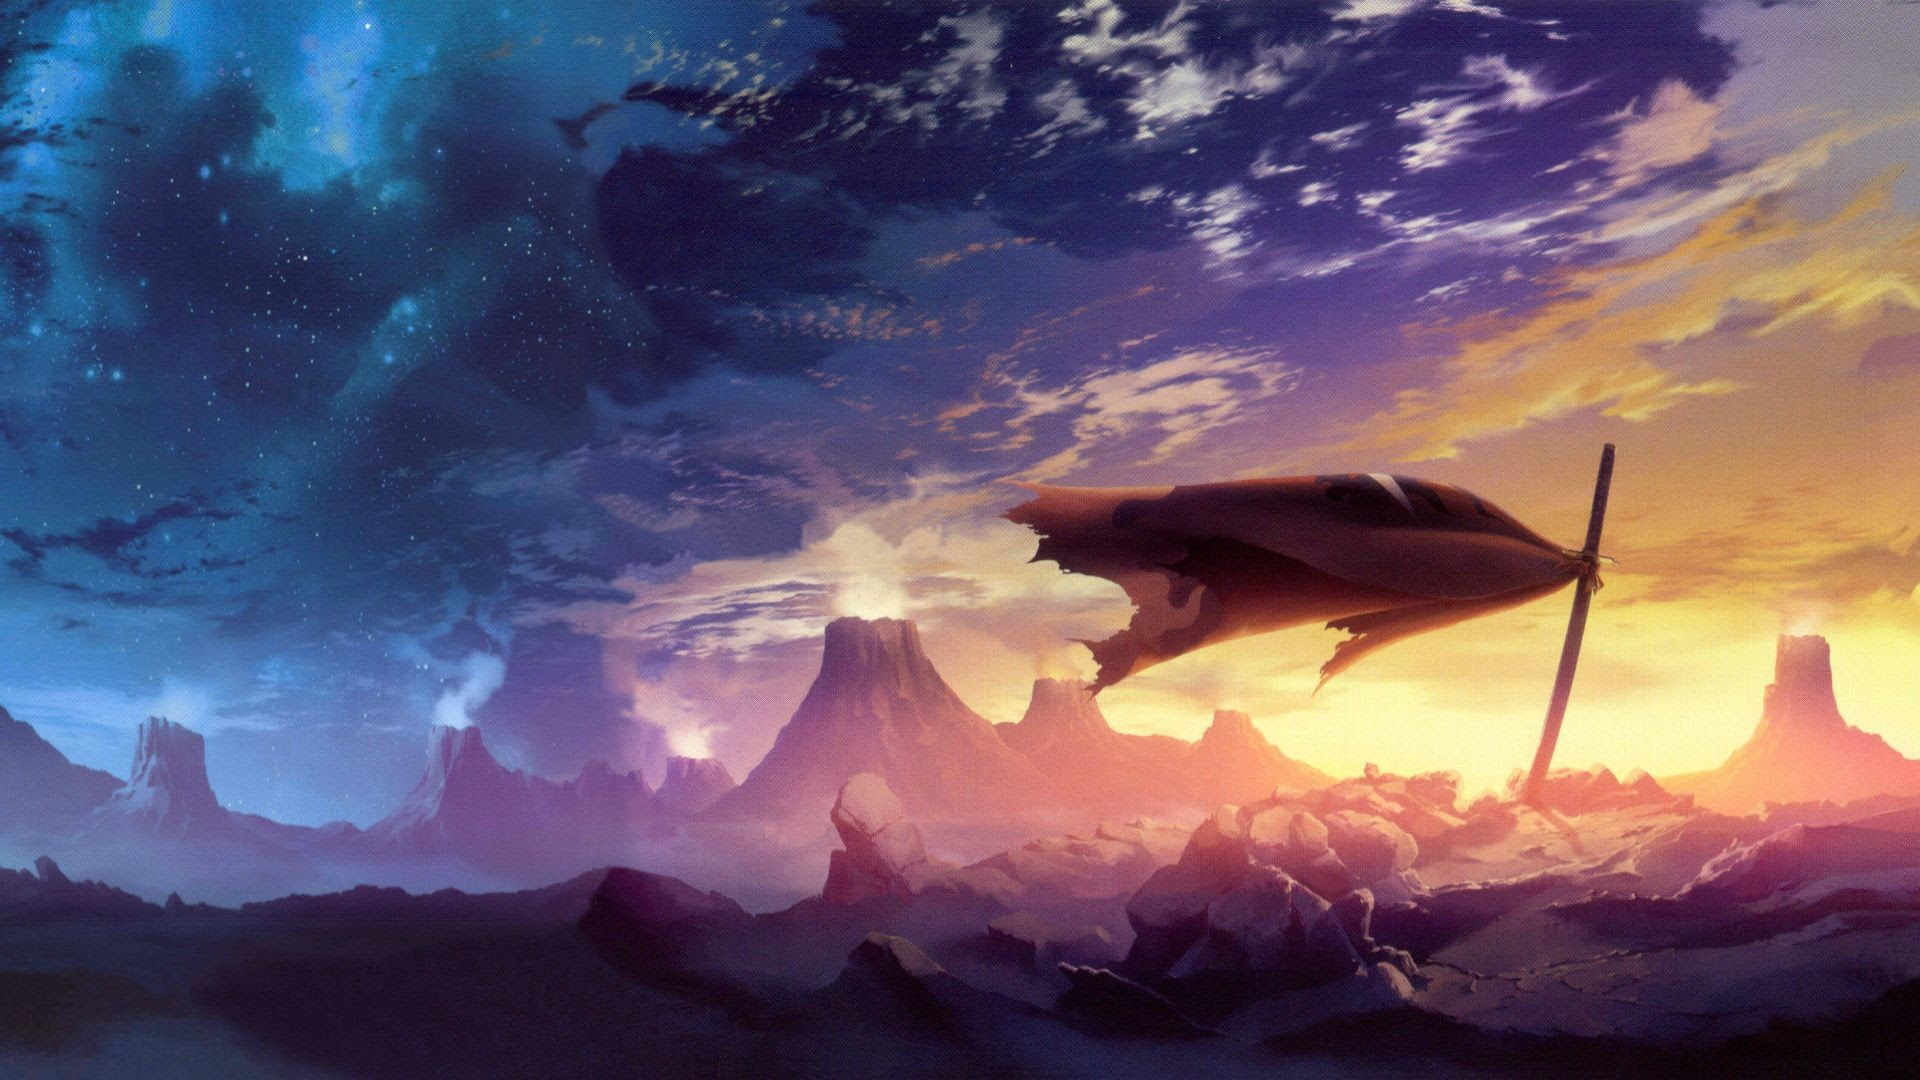 Epic Anime Wallpapers HD (59+ images)